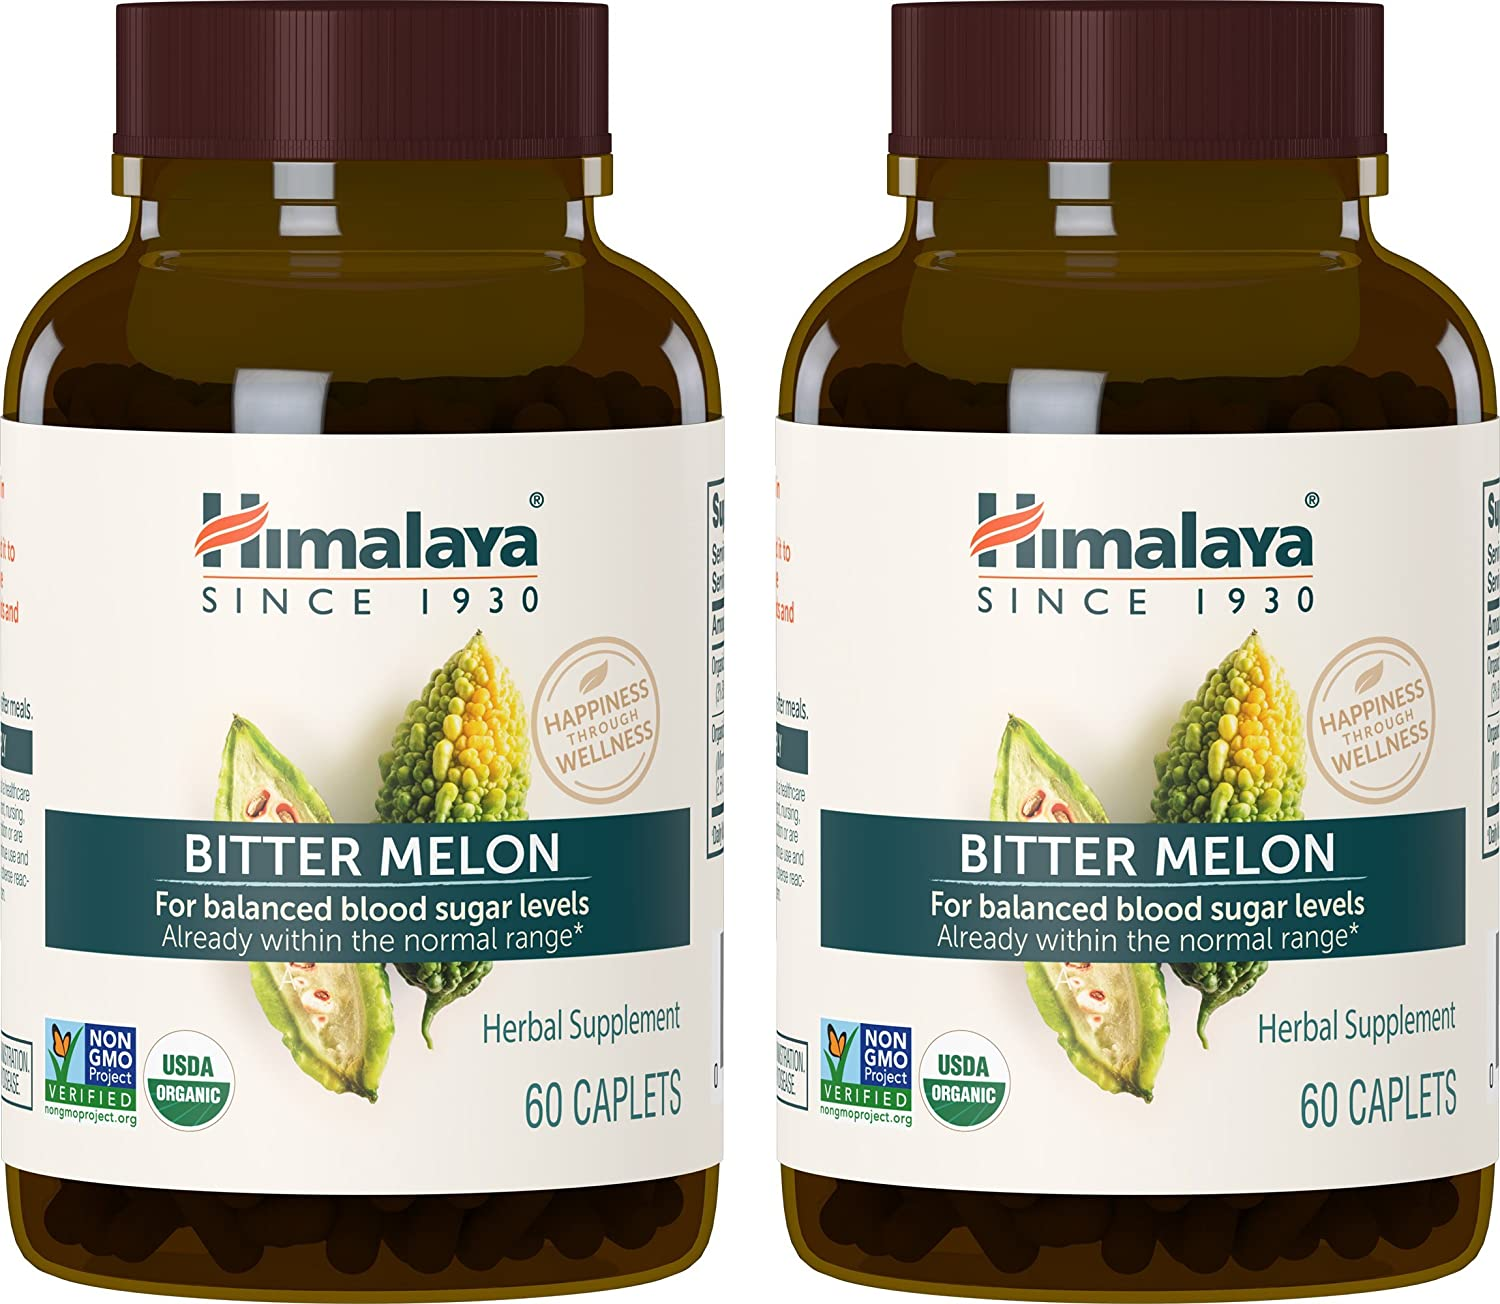 Himalaya Organic Bitter Melon Karela, 60 Caplets for Glycemic, Pancreatic Support Weight Management 660mg 2 Pack 2 Month Supply